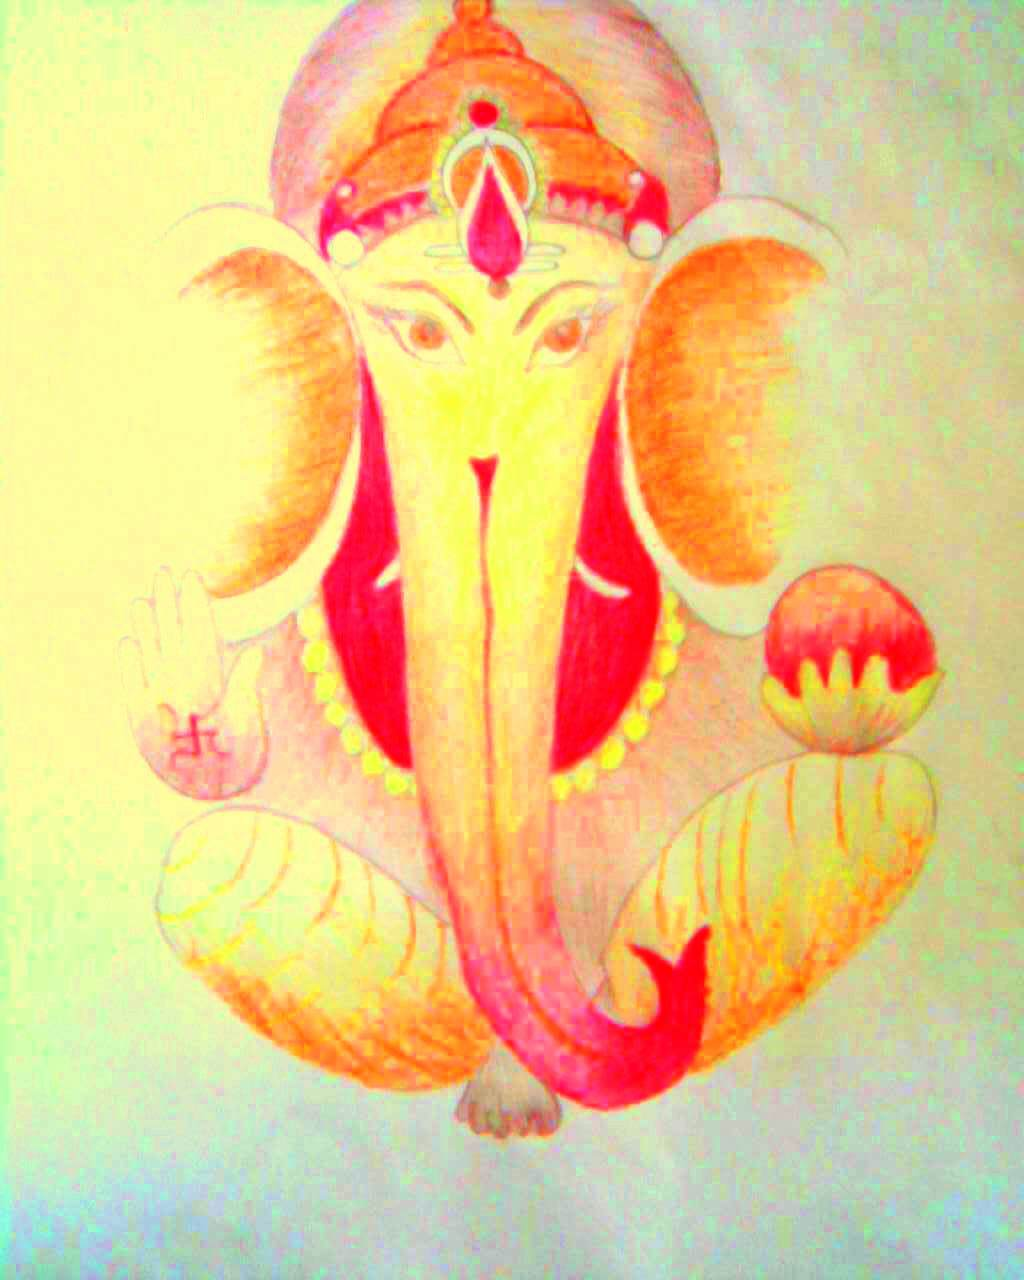 Boundless24x7 Paintings And Drawings Color Pencil Drawings